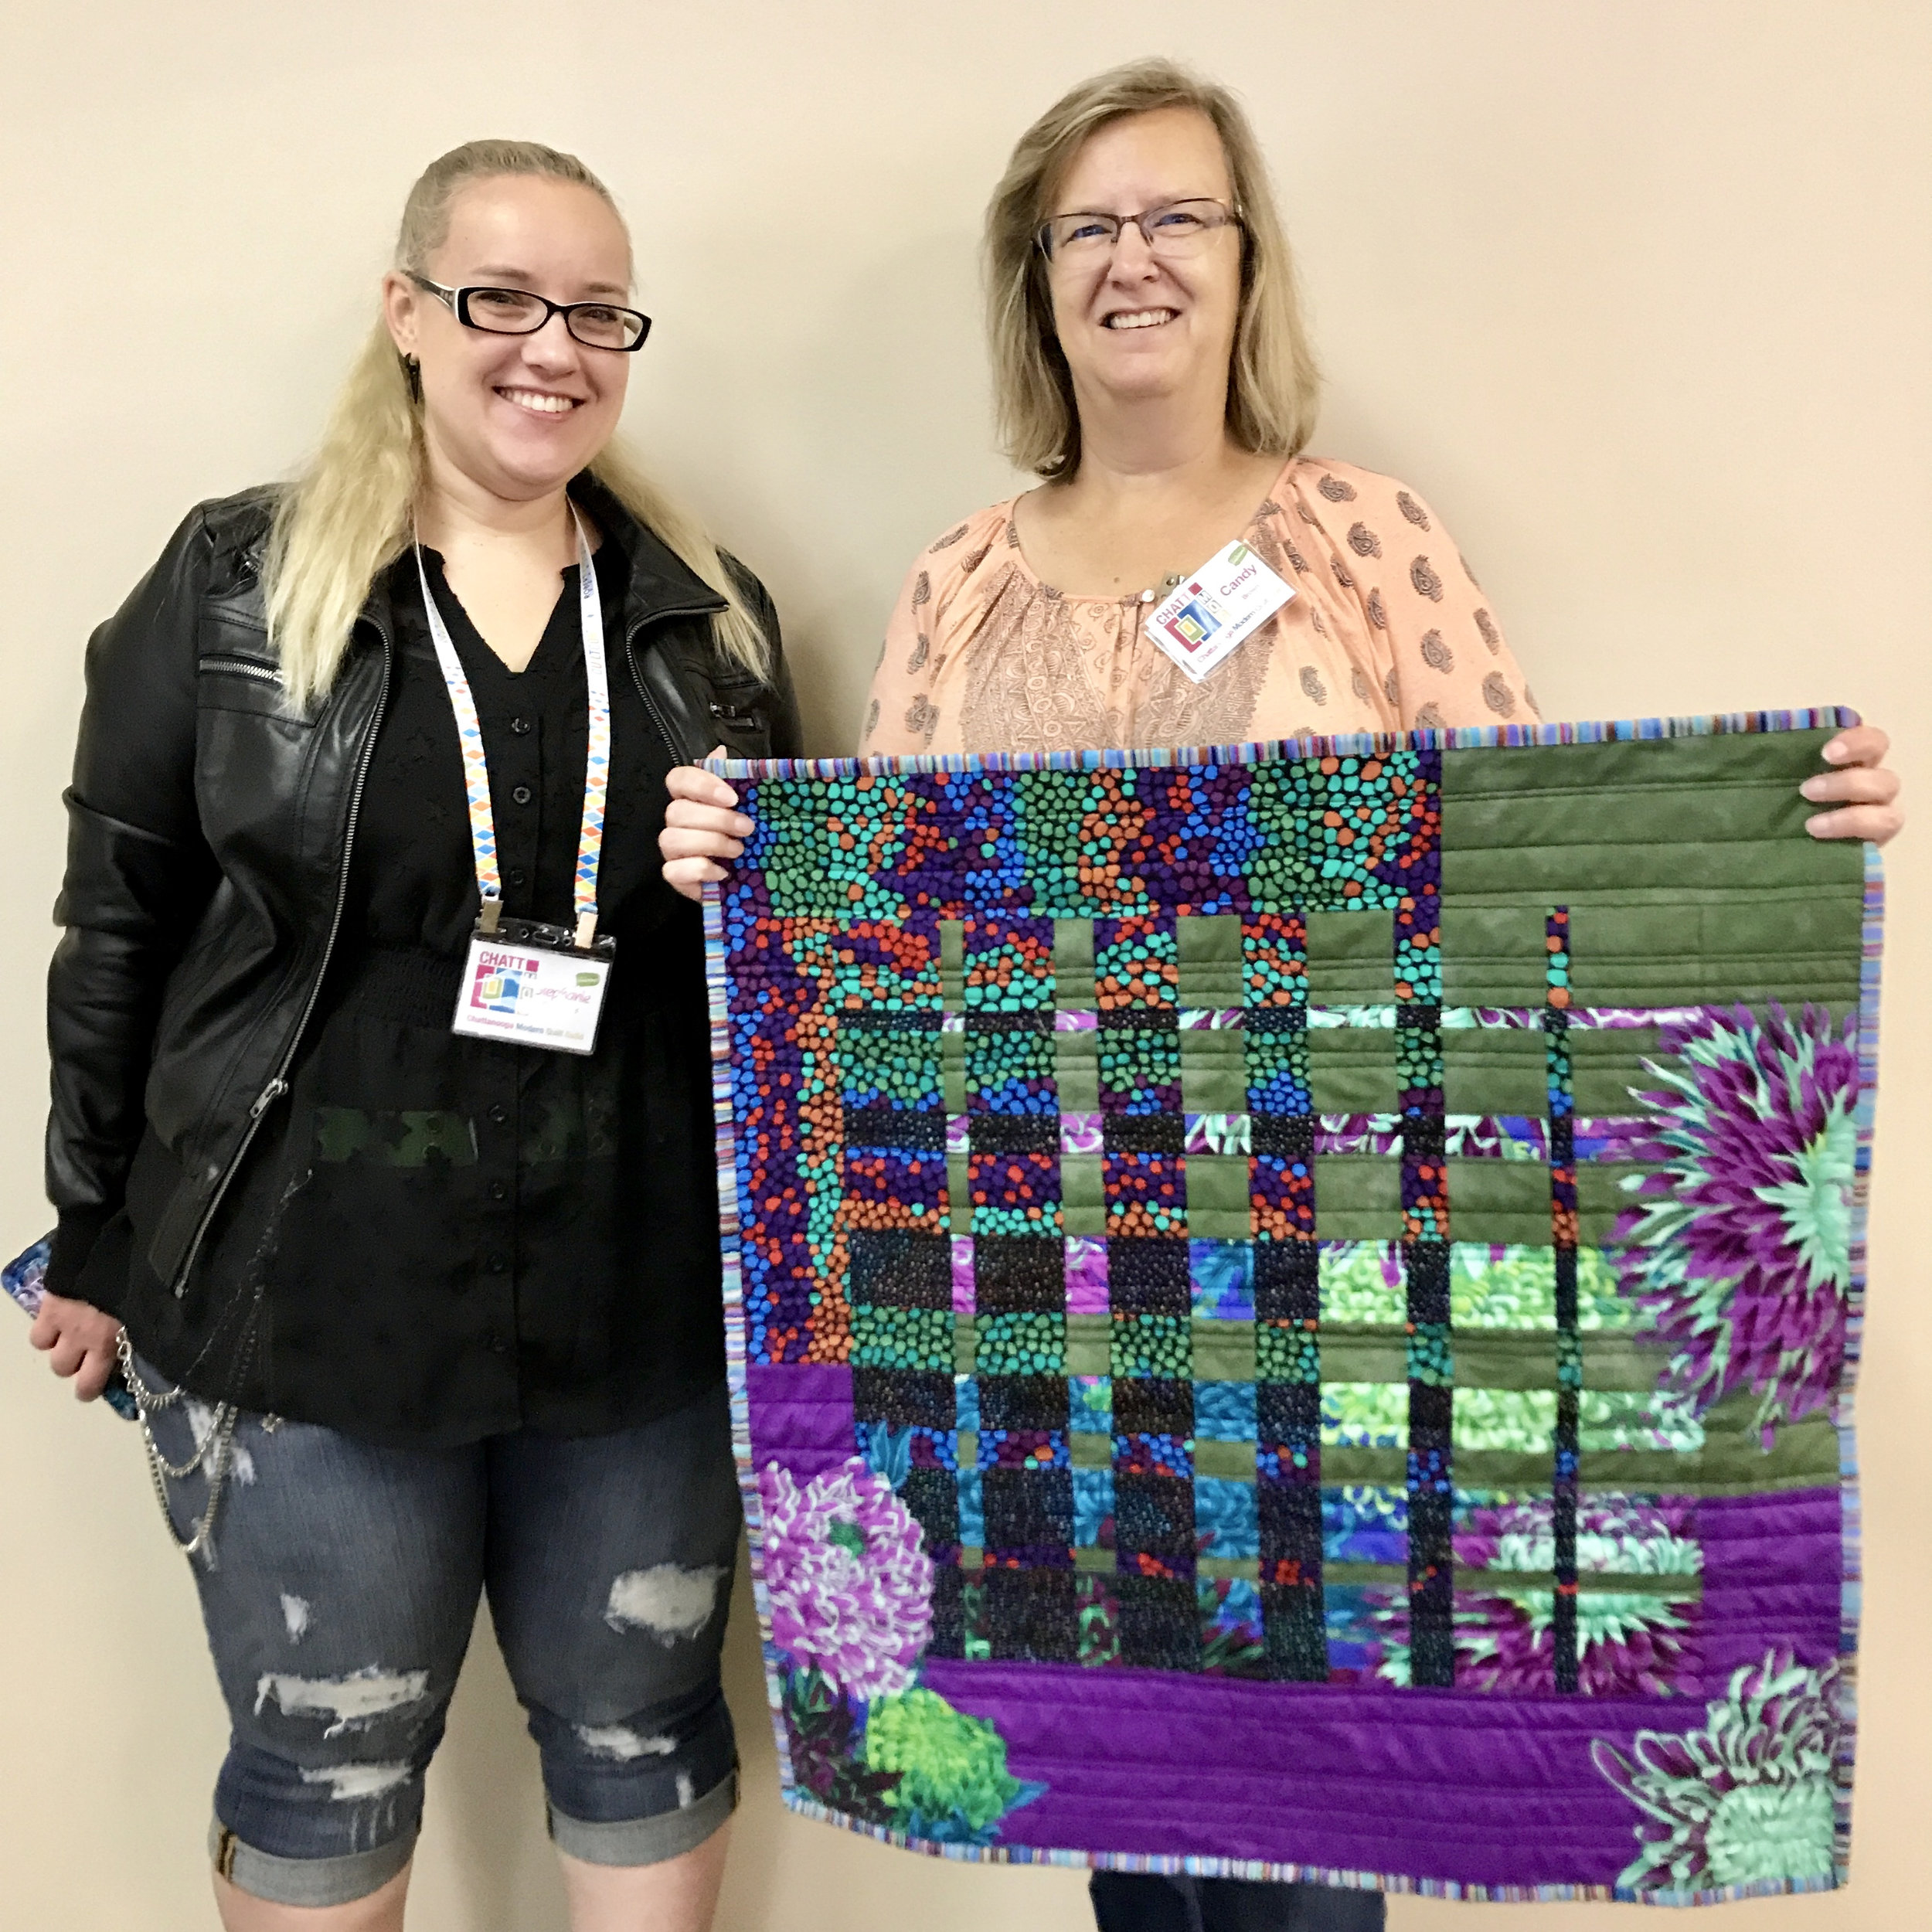 Quilt by Candy Brown (right)